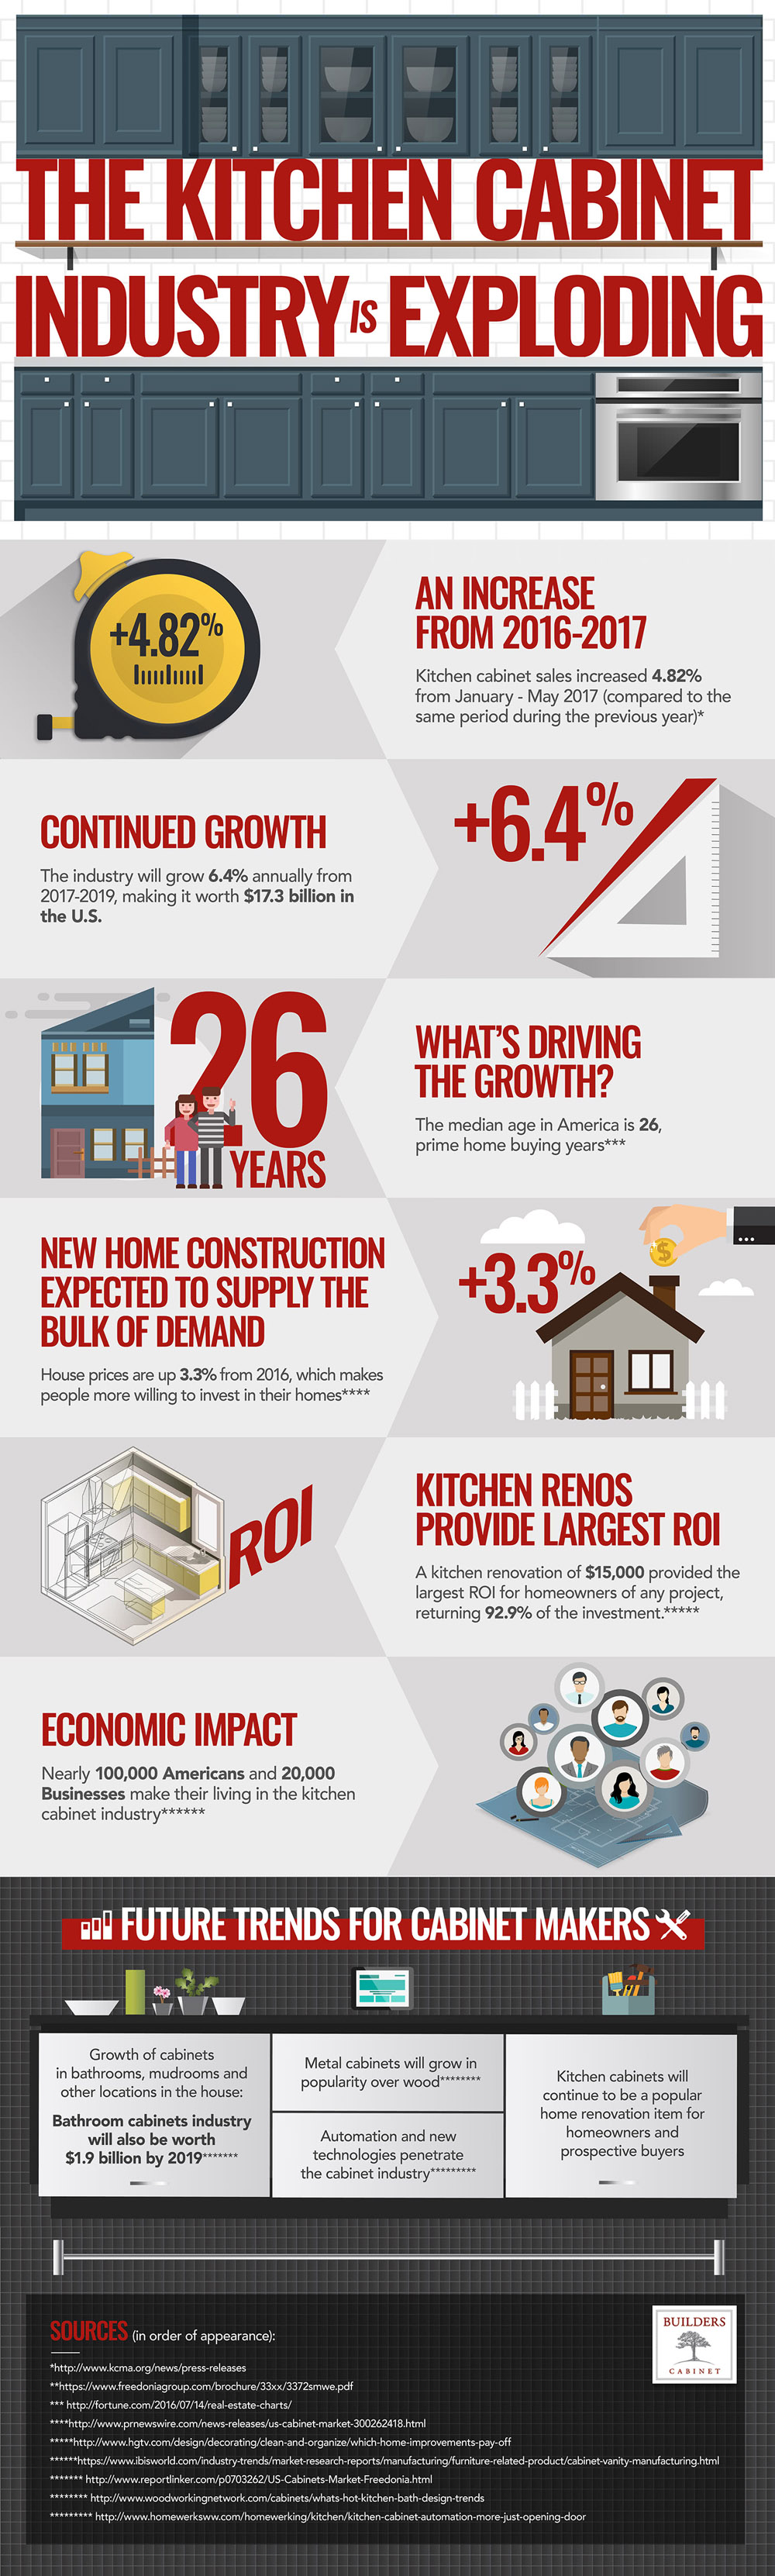 The Kitchen Cabinet Industry is Exploding